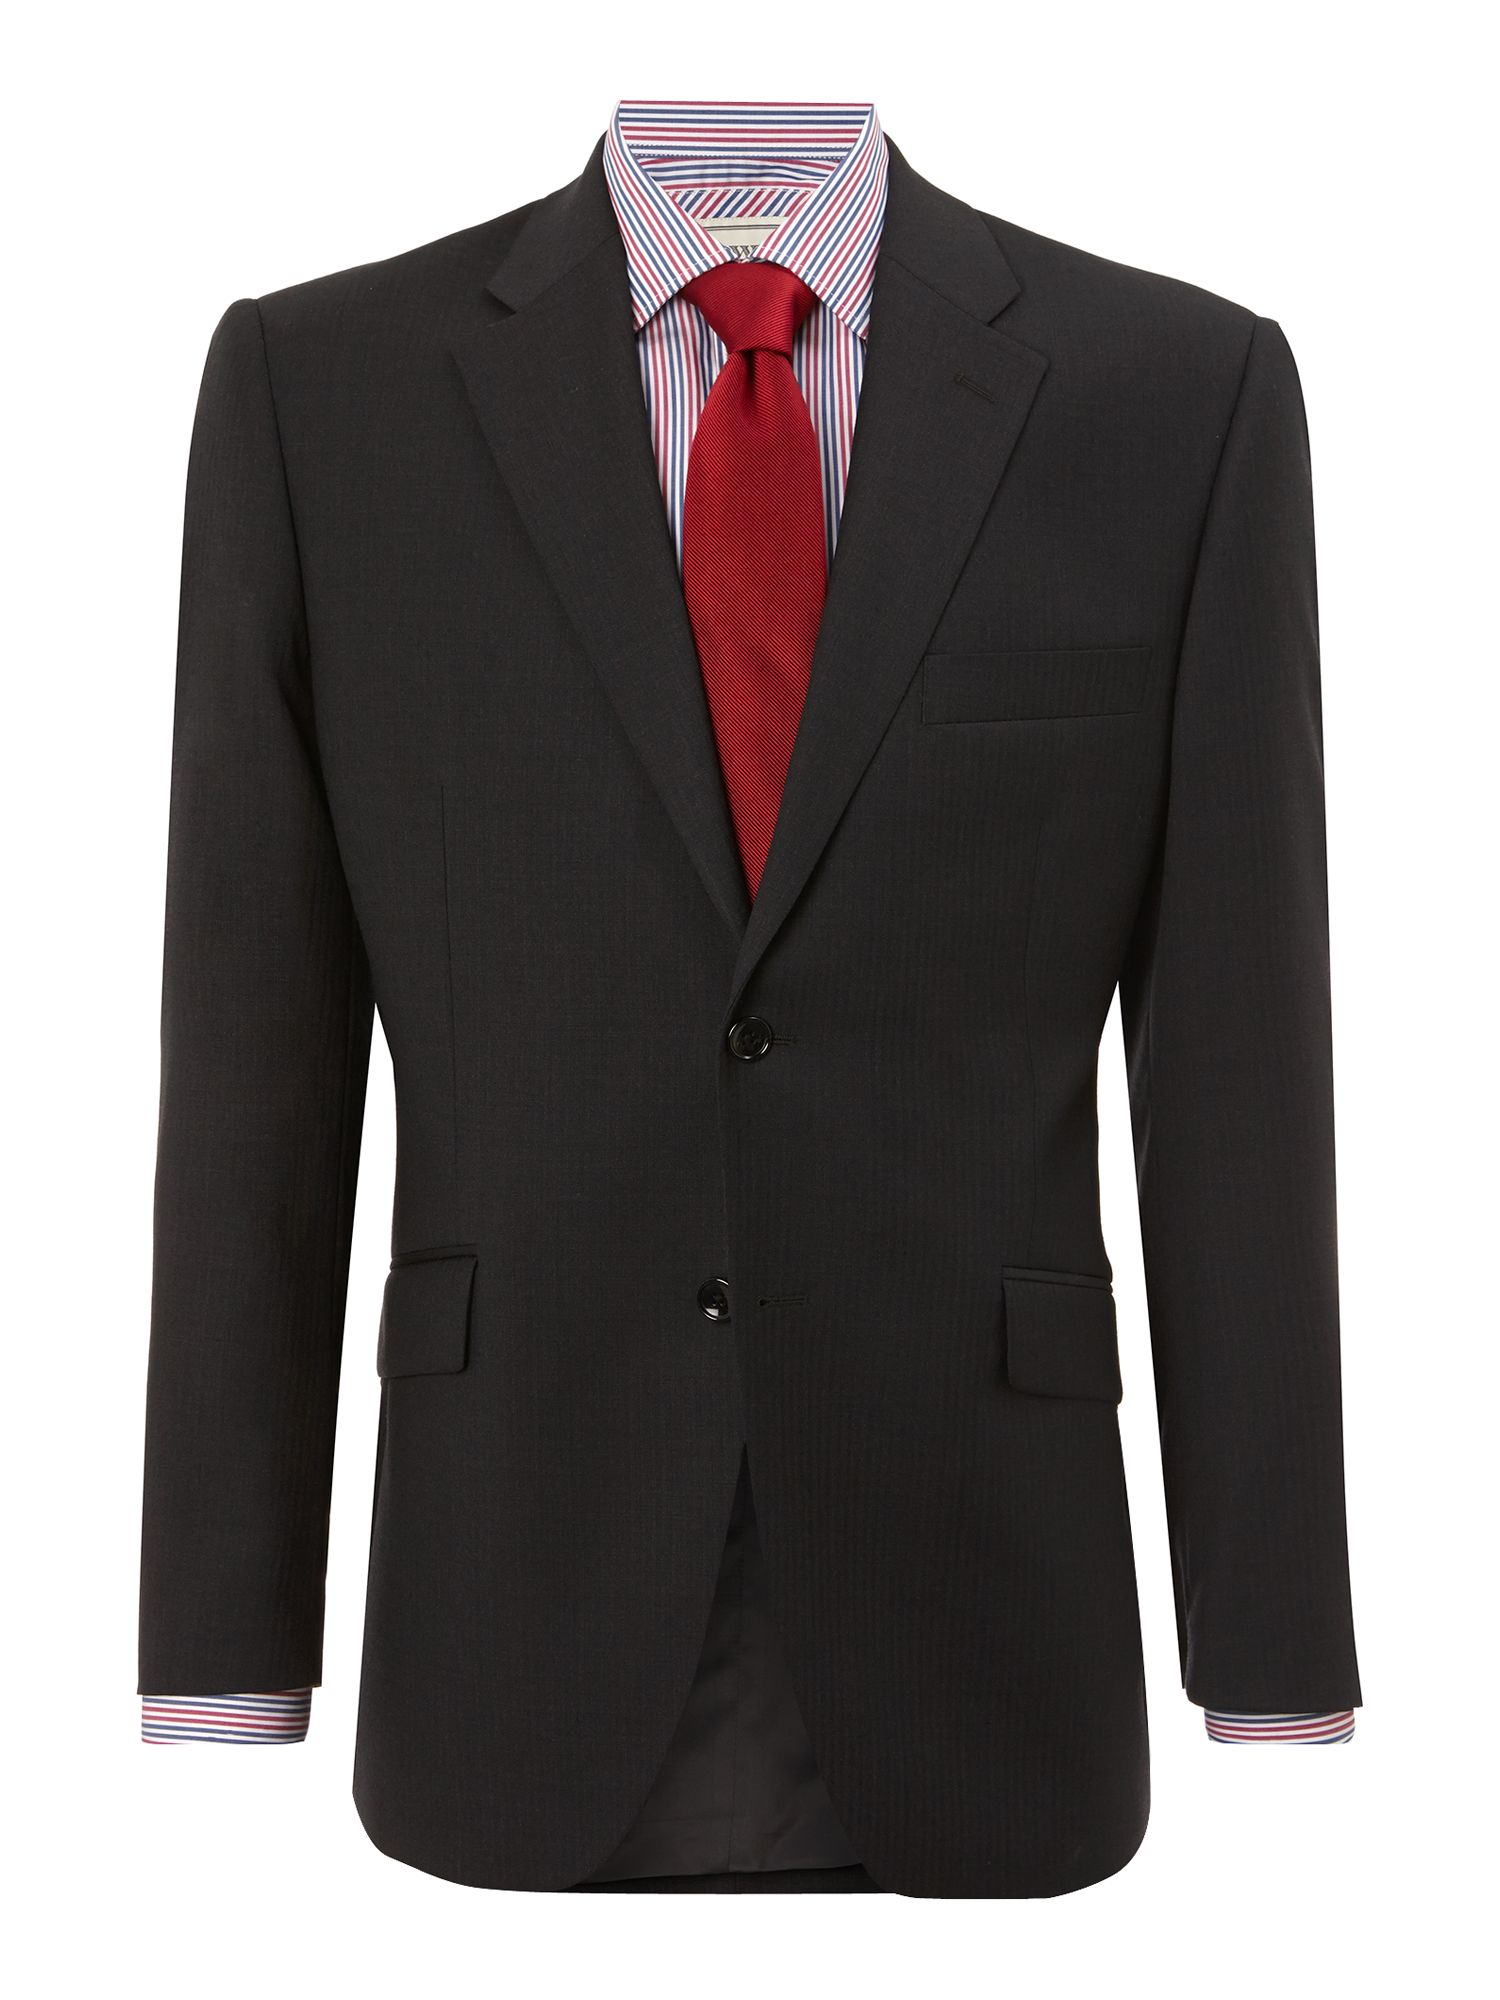 Howard Fine Herringbone Suit Jacket